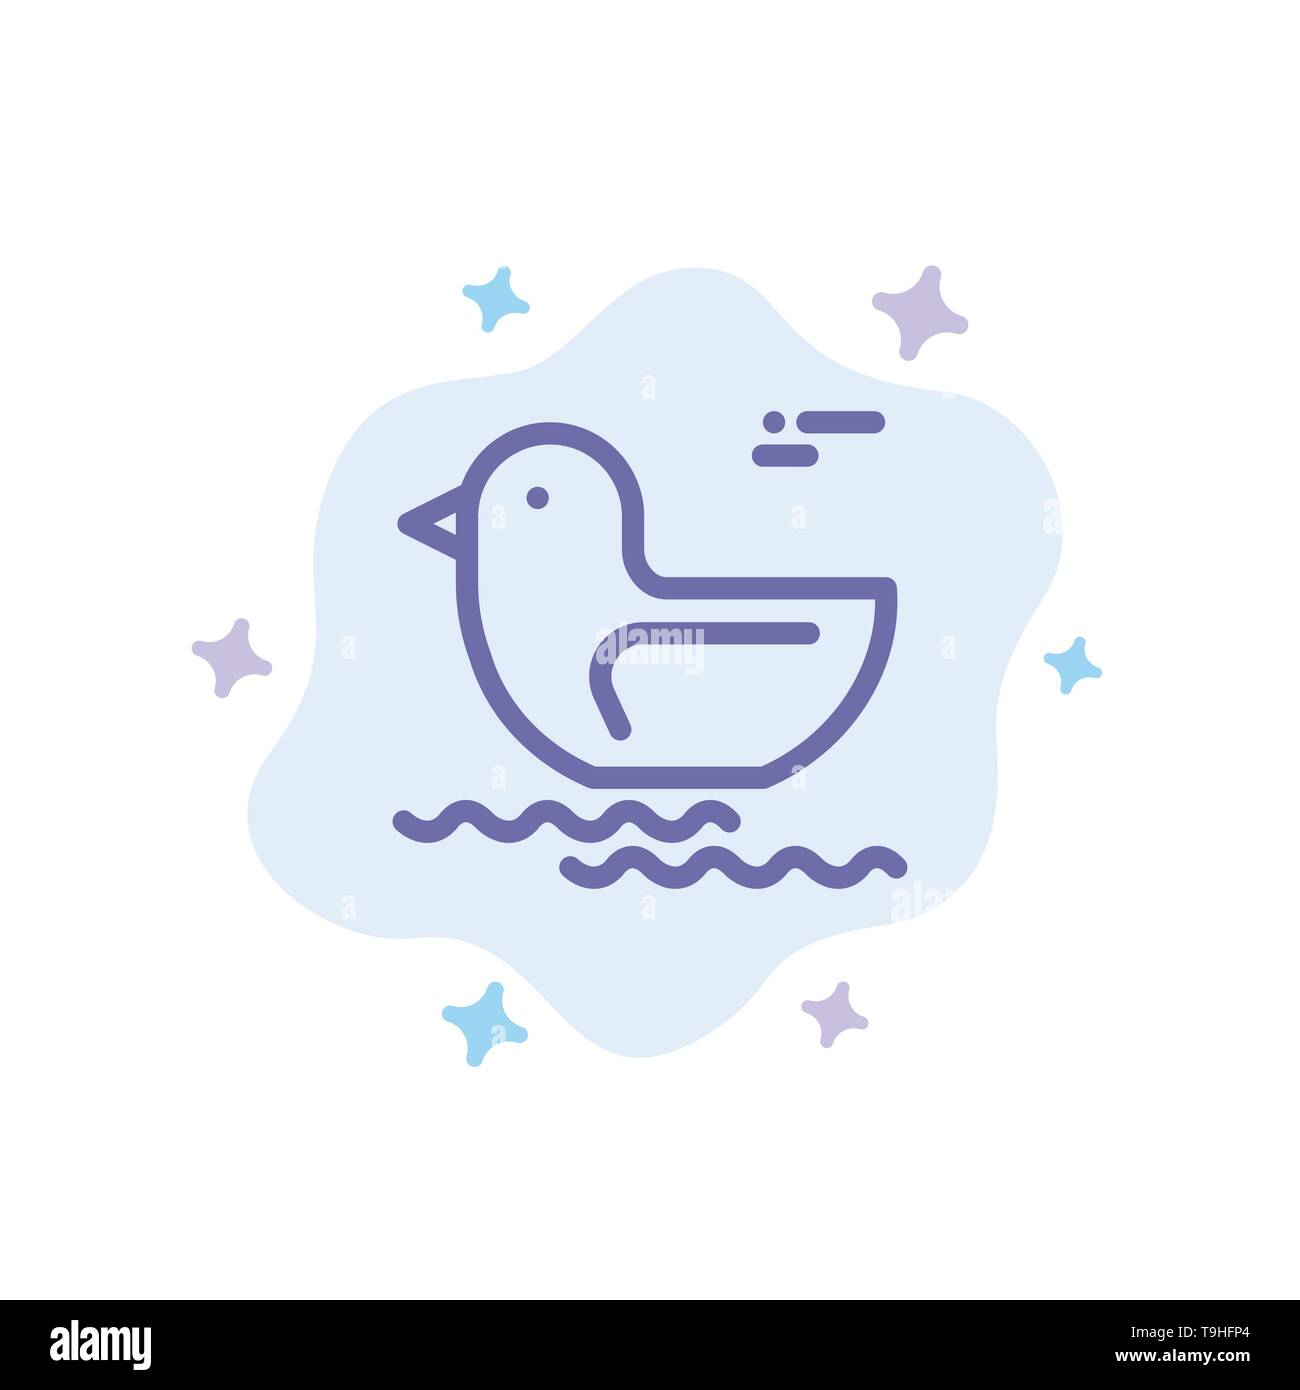 Duck, River, Canada Blue Icon on Abstract Cloud Background - Stock Image